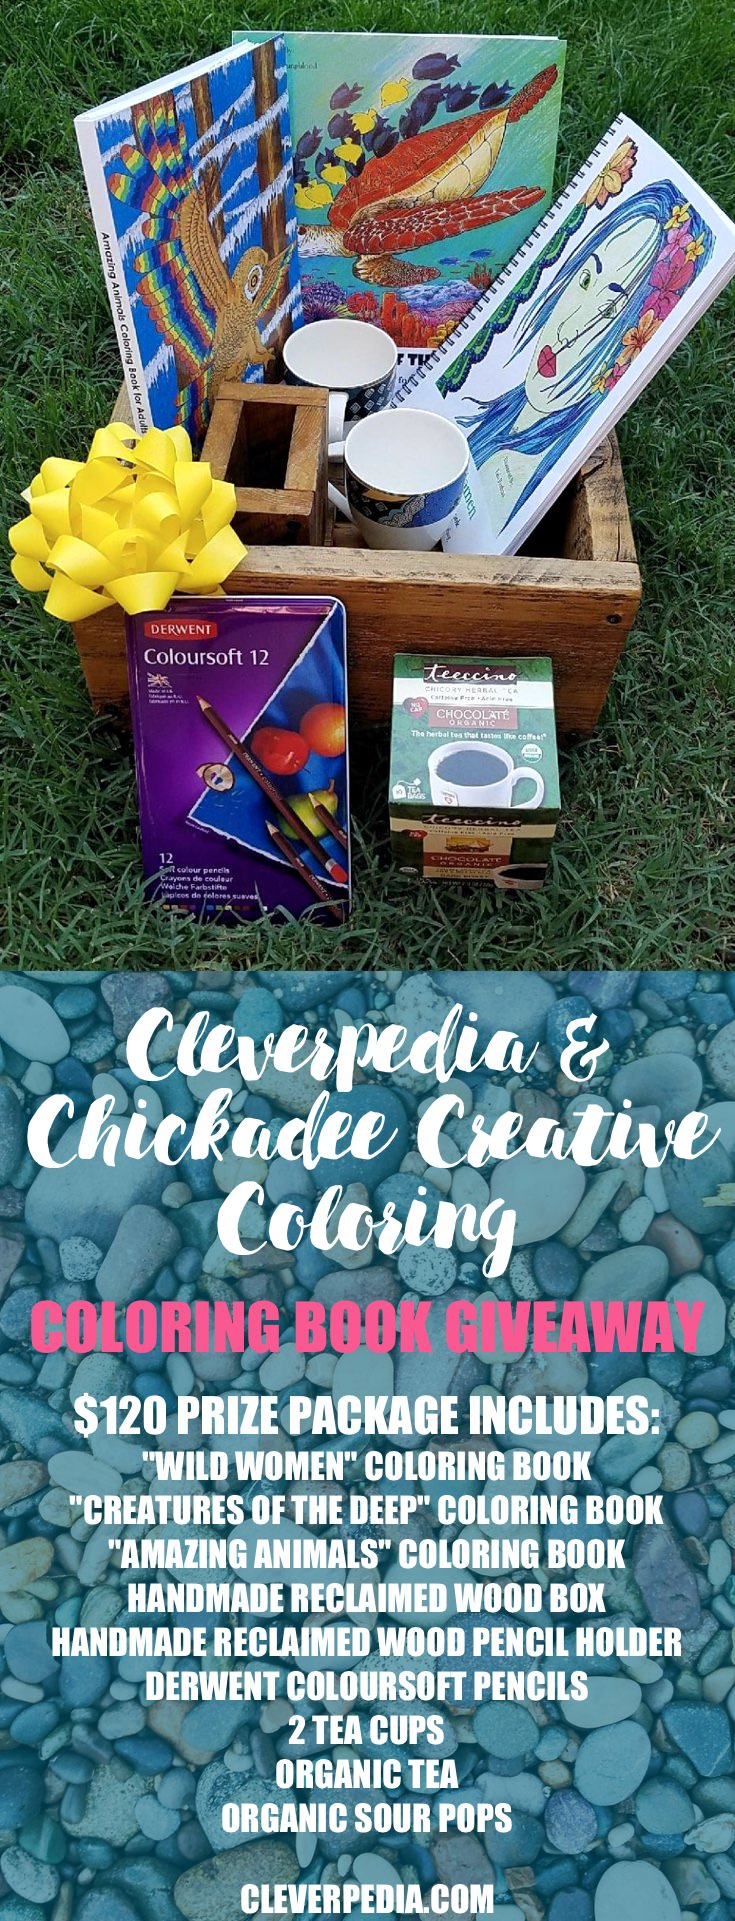 For our latest coloring book giveaway, we've partnered up with Chickadee Creative Coloring to bring you an exciting giveaway prize valued at $120. Read the review and enter to win at Cleverpedia.com!